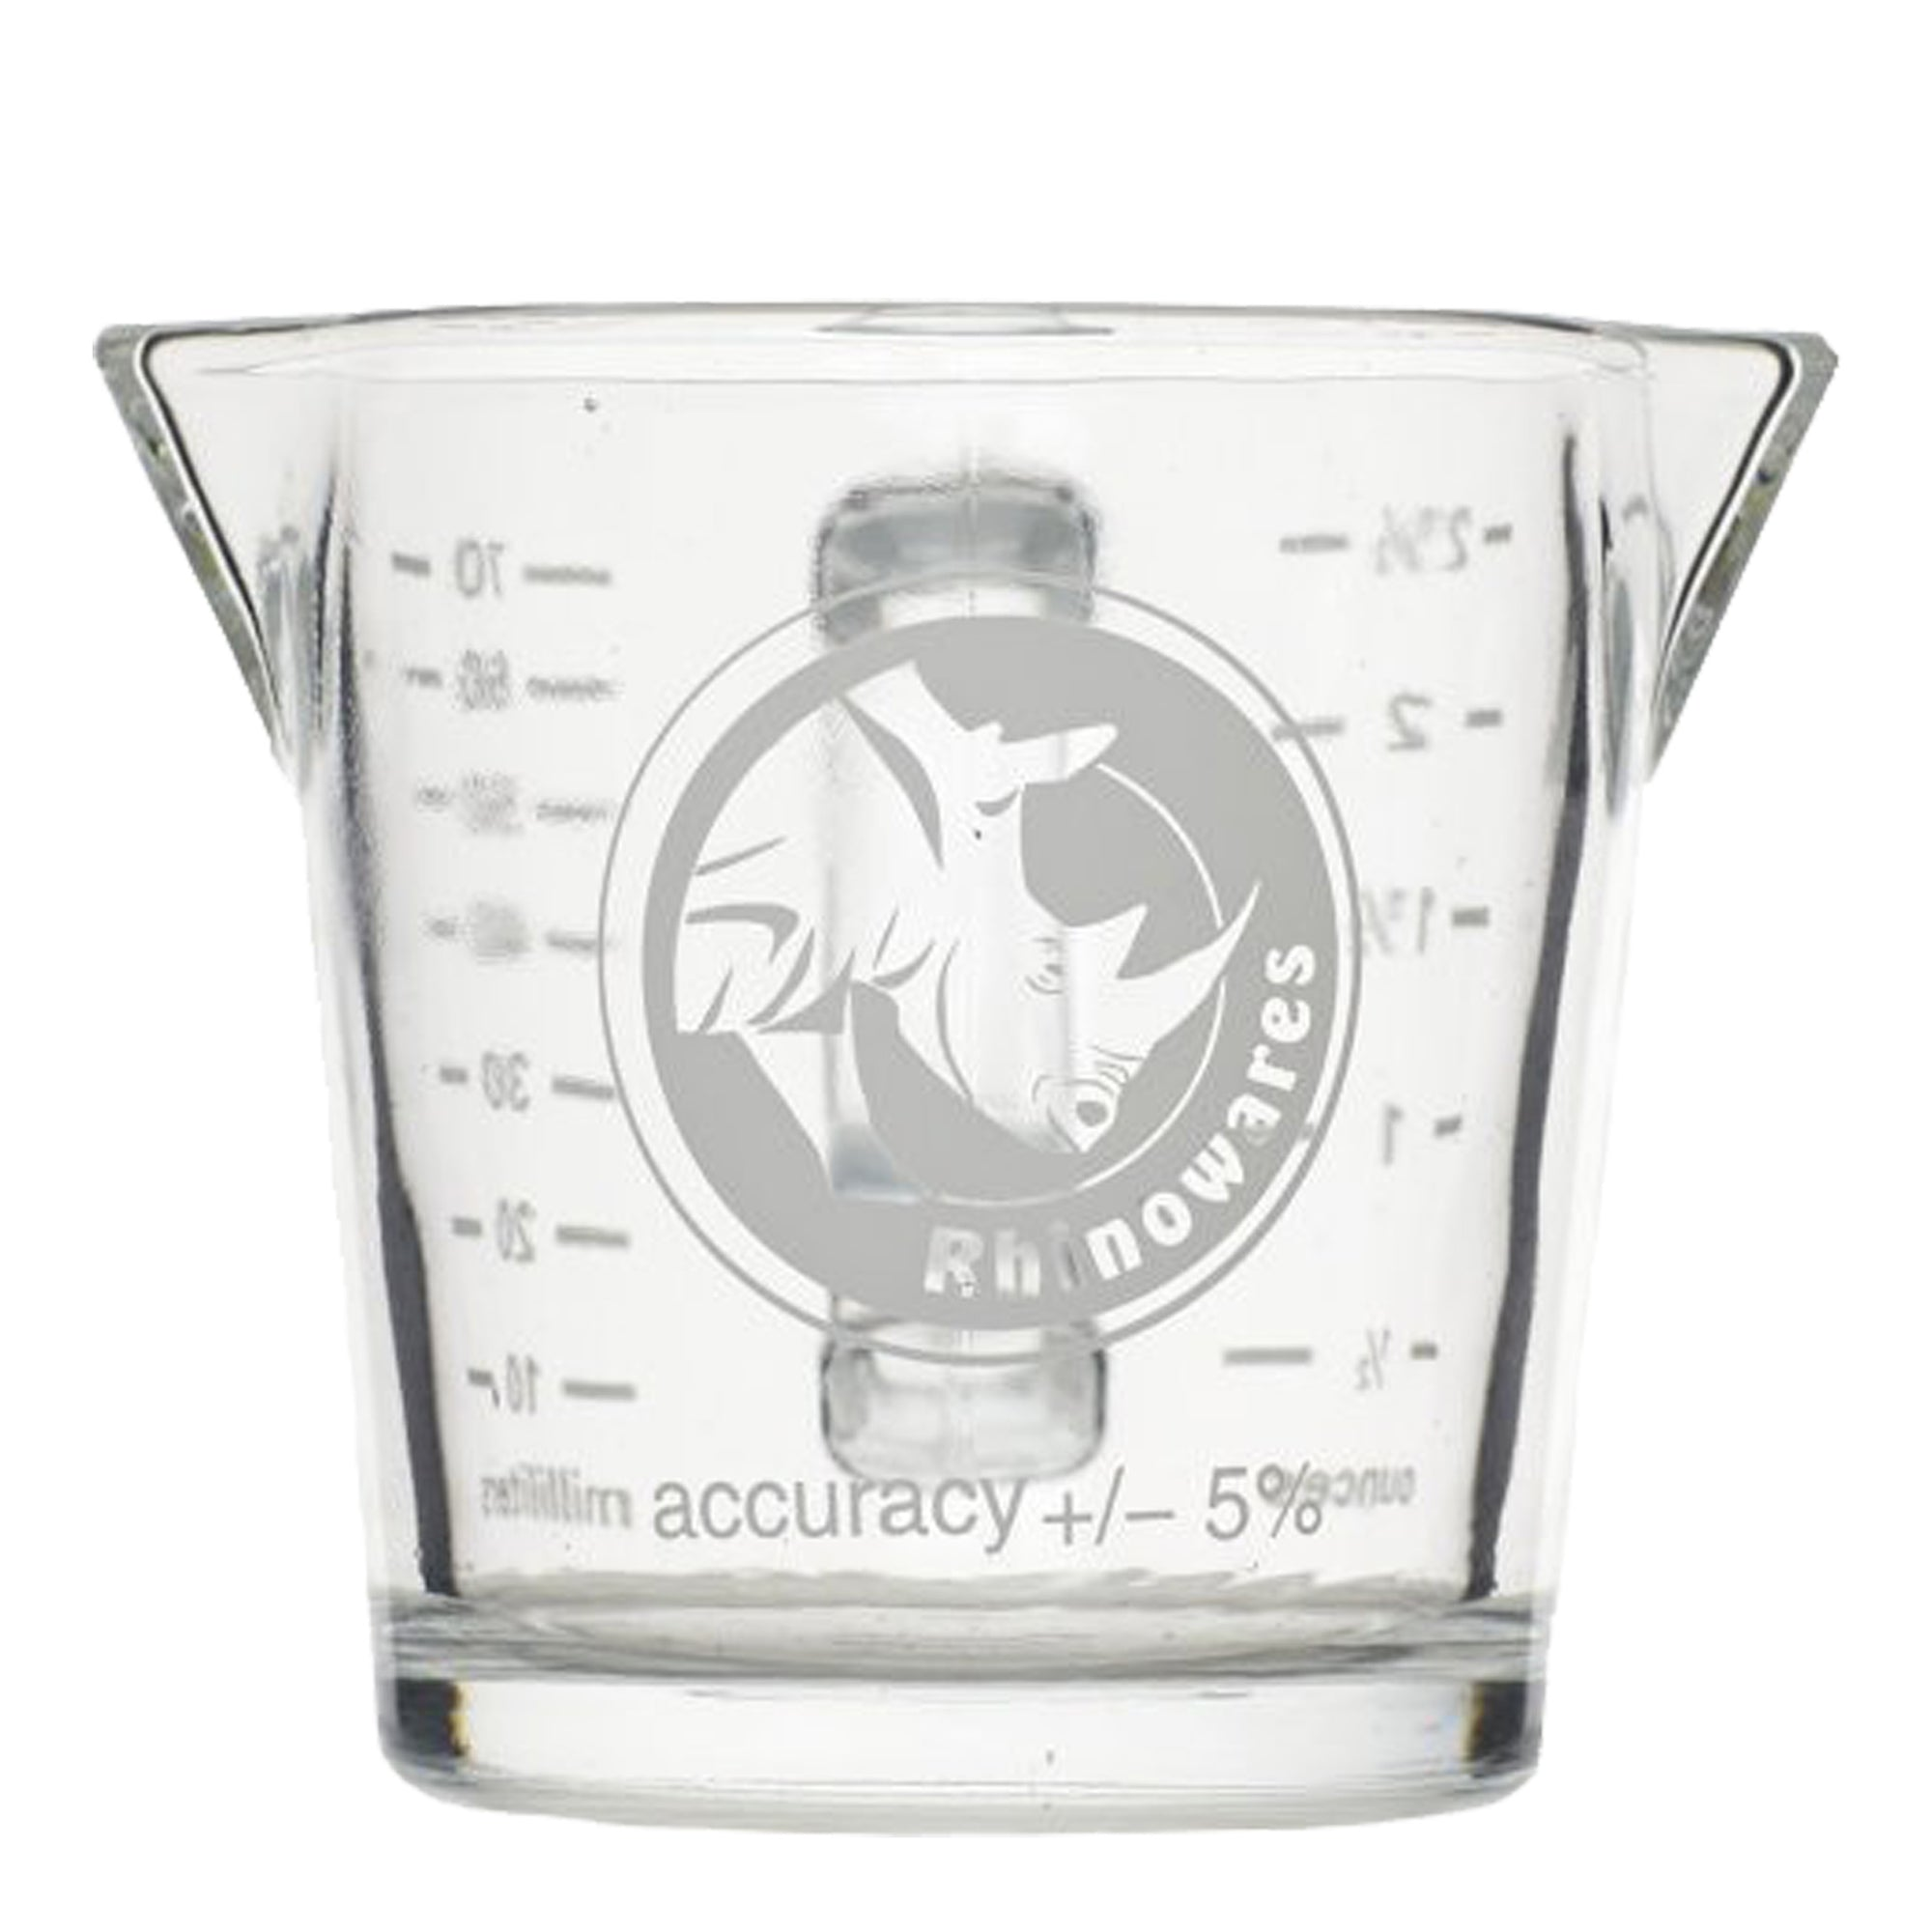 Rhino Shot Glass with handle 2.4oz / 70ml - Espresso Gear